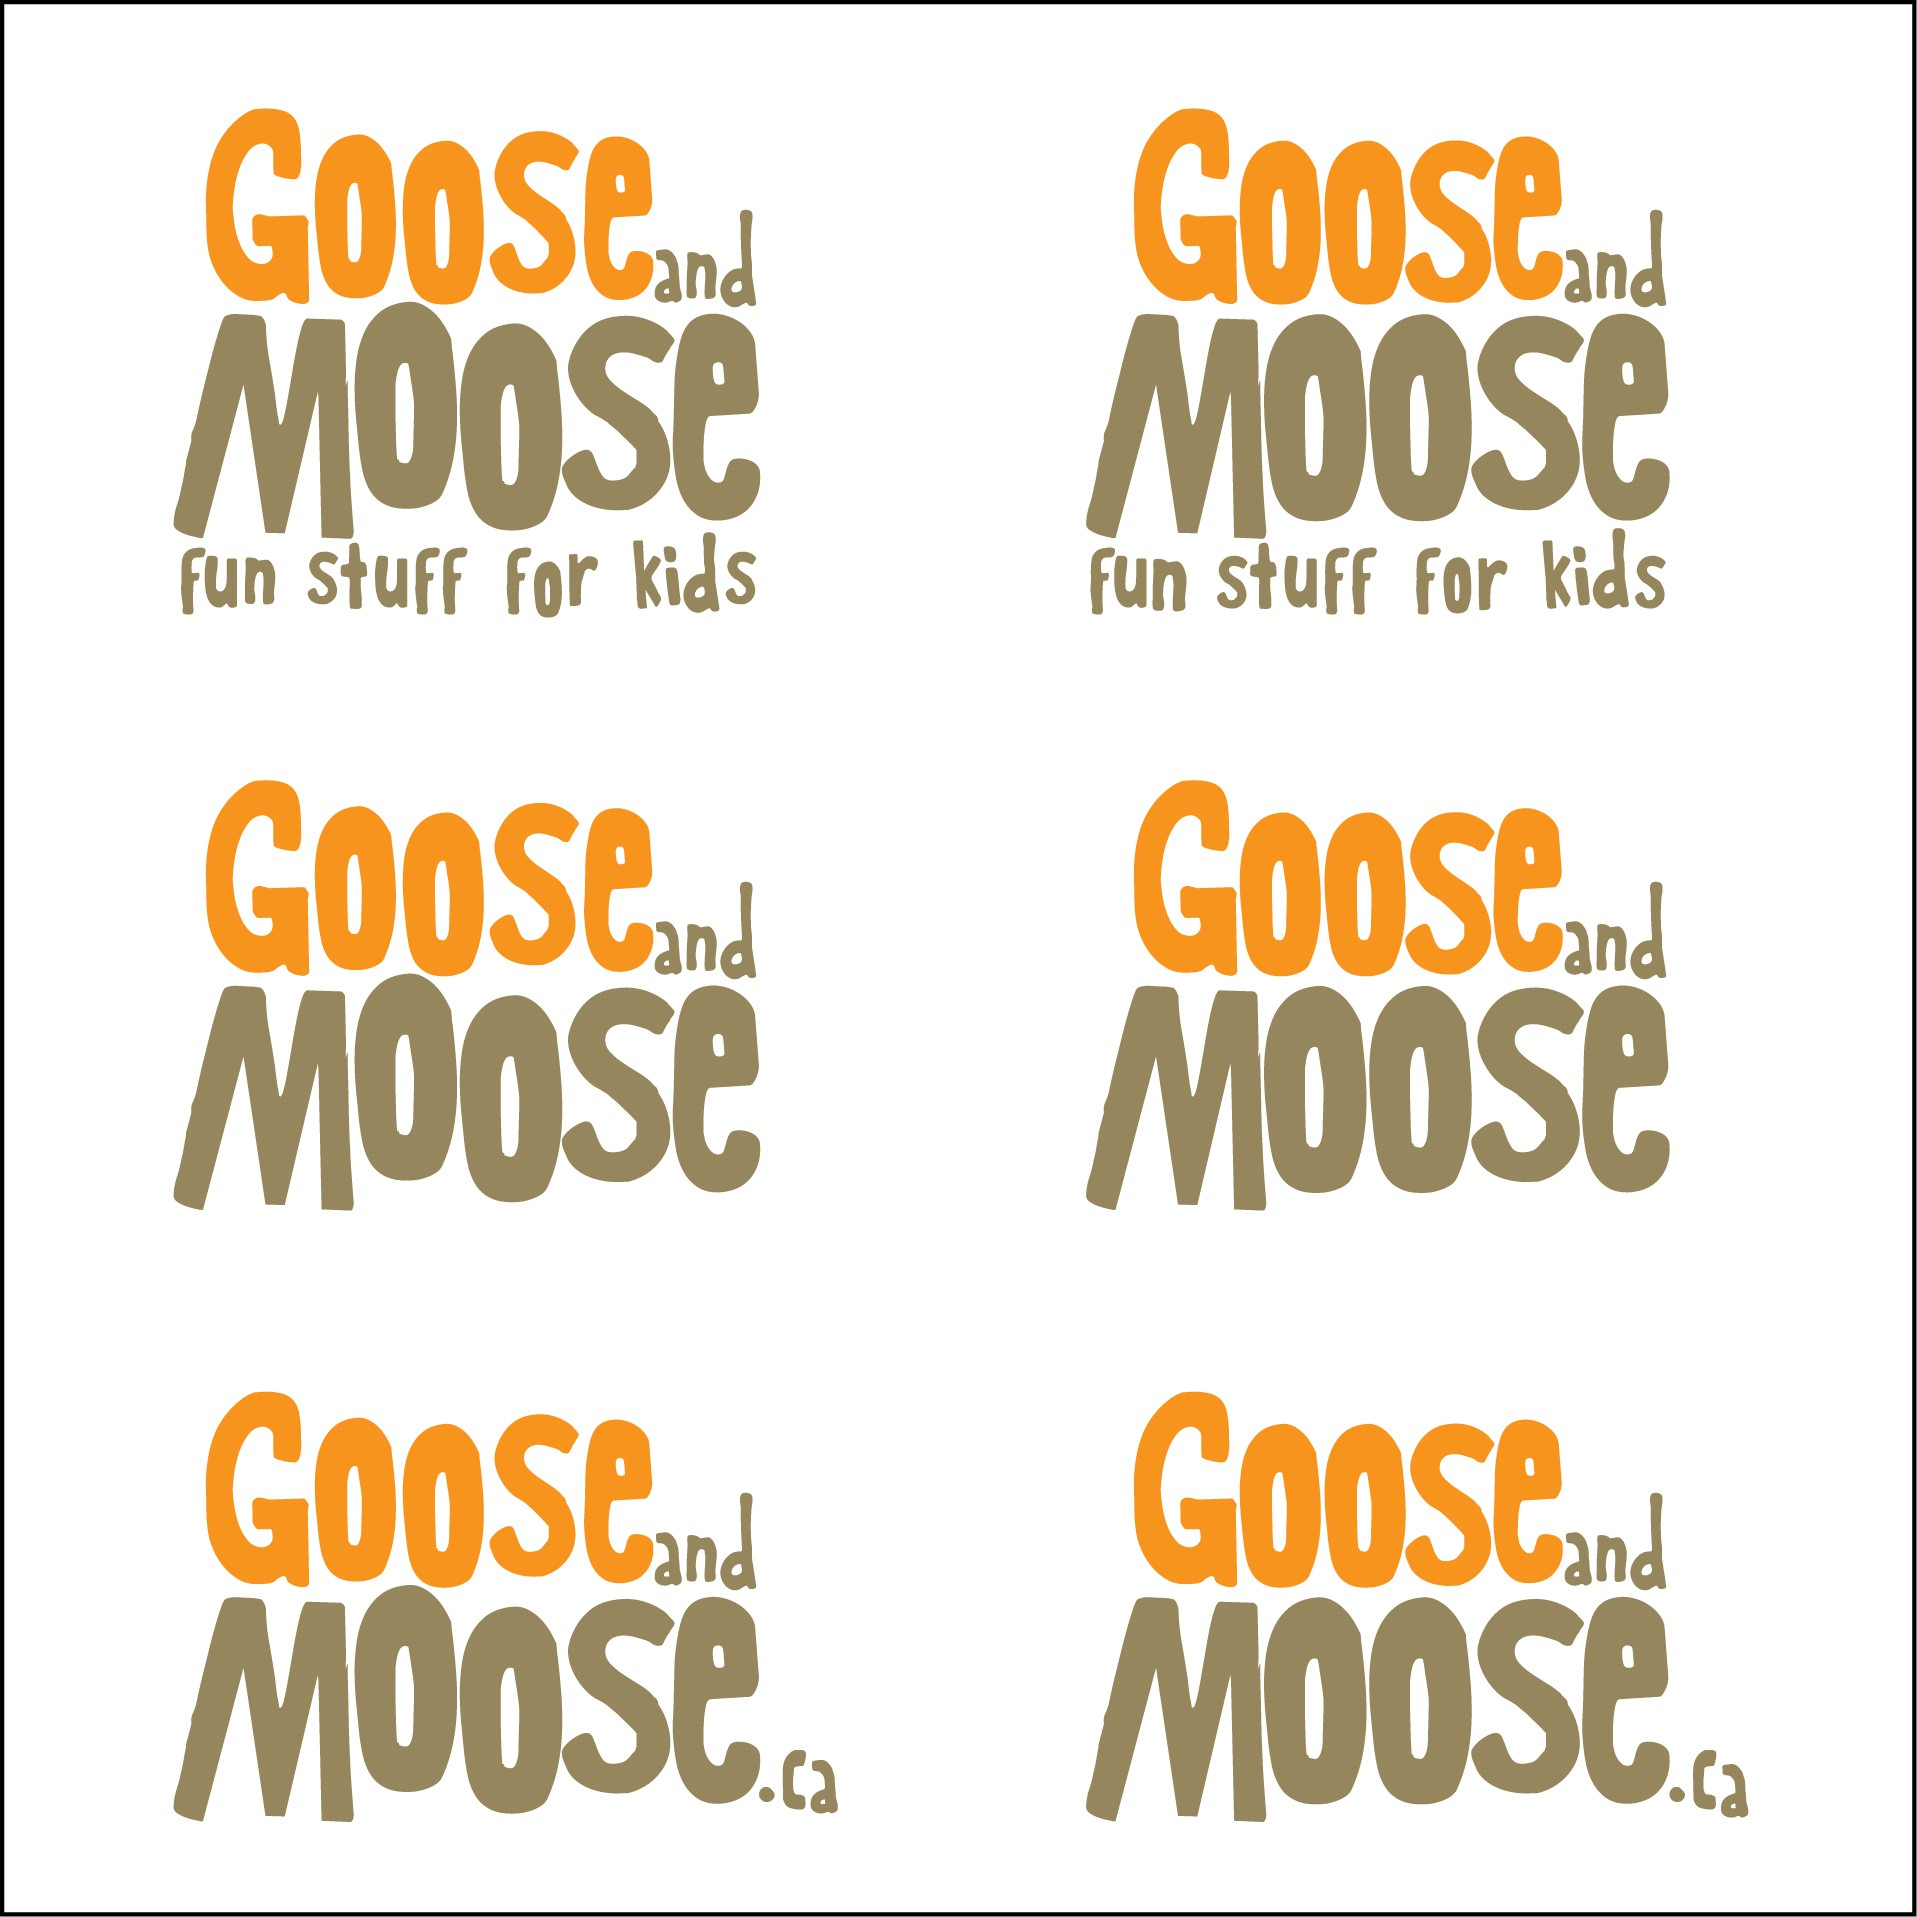 Create the next logo for Goose and Moose